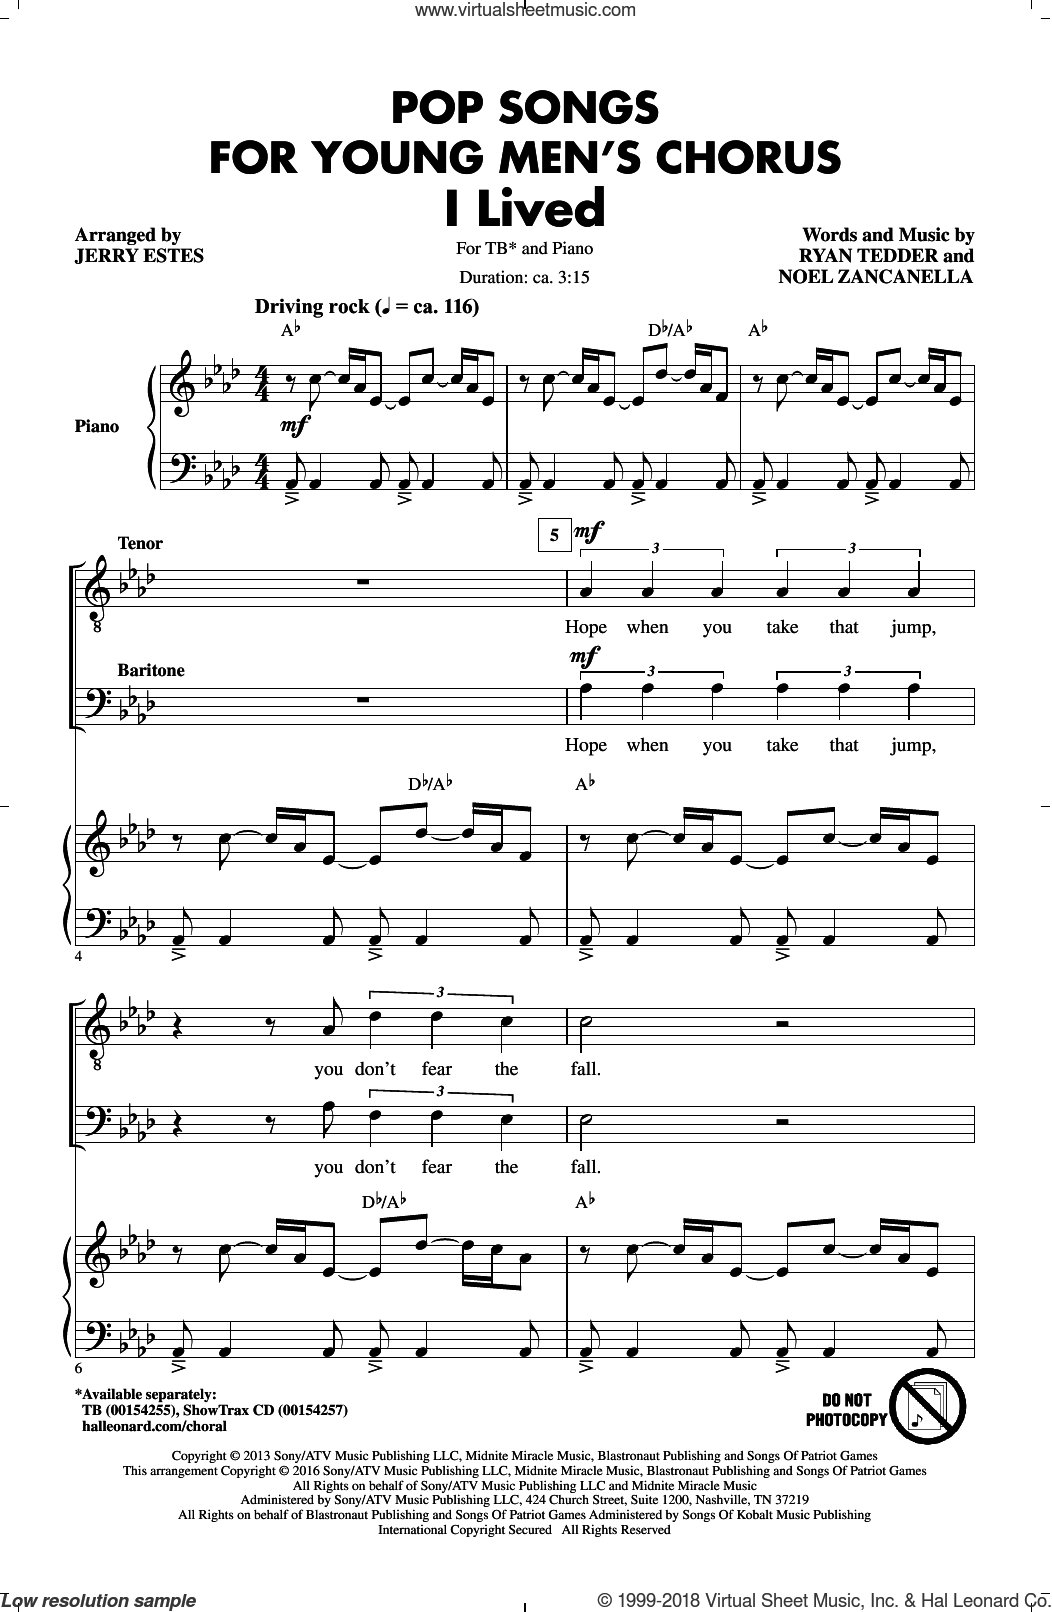 Pop Songs for Young Men's Chorus sheet music for choir (TB) by Will Champion, Jerry Estes, Coldplay, Chris Martin, Guy Berryman and Jon Buckland. Score Image Preview.